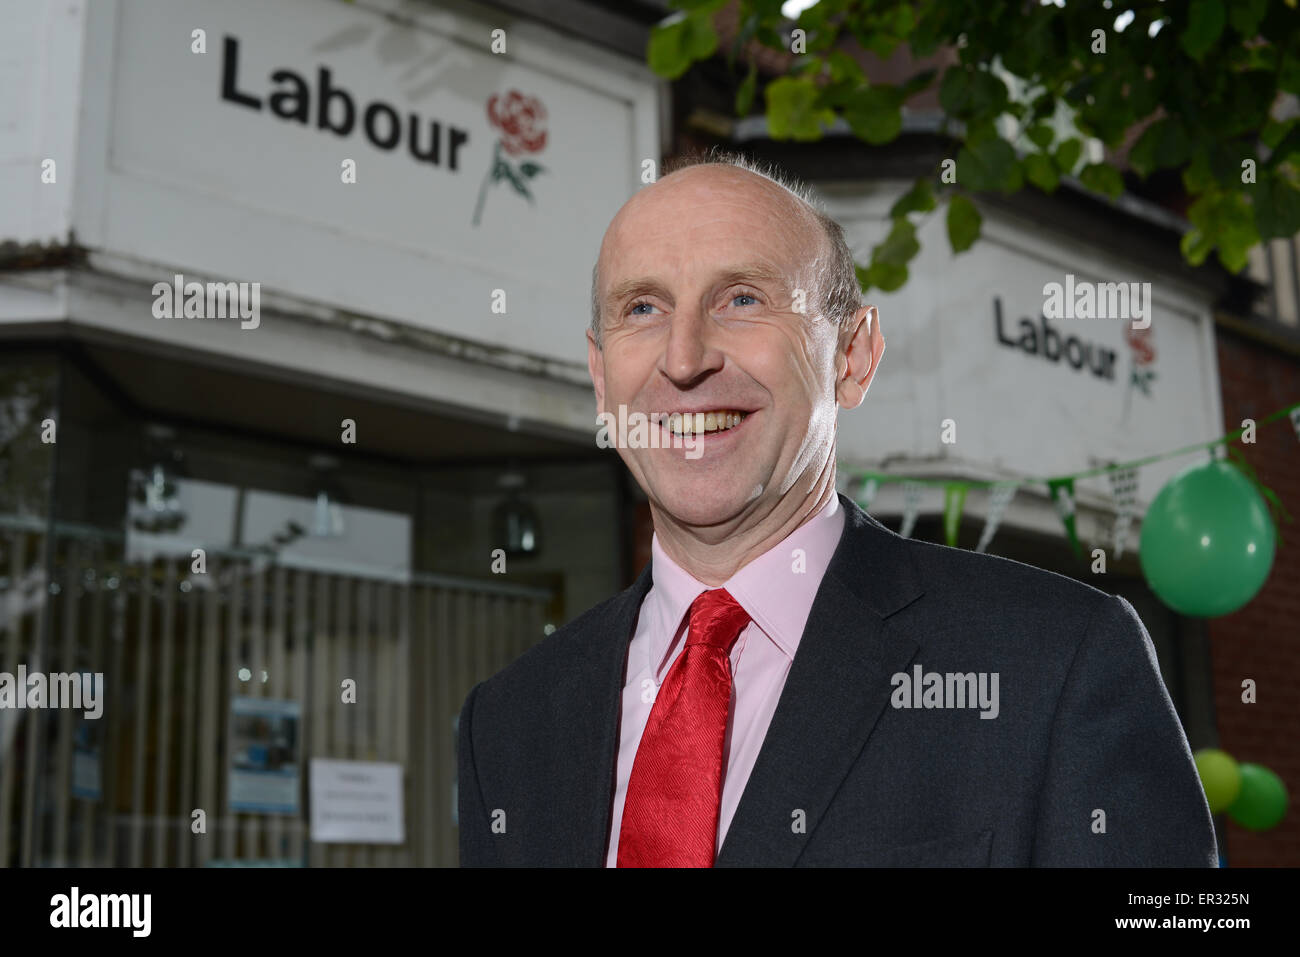 Wentworth & Dearne MP John Healey outside his Wath-Upon-Dearne office near Rotherham, UK. Photo by Scott Bairstow/Alamy Stock Photo